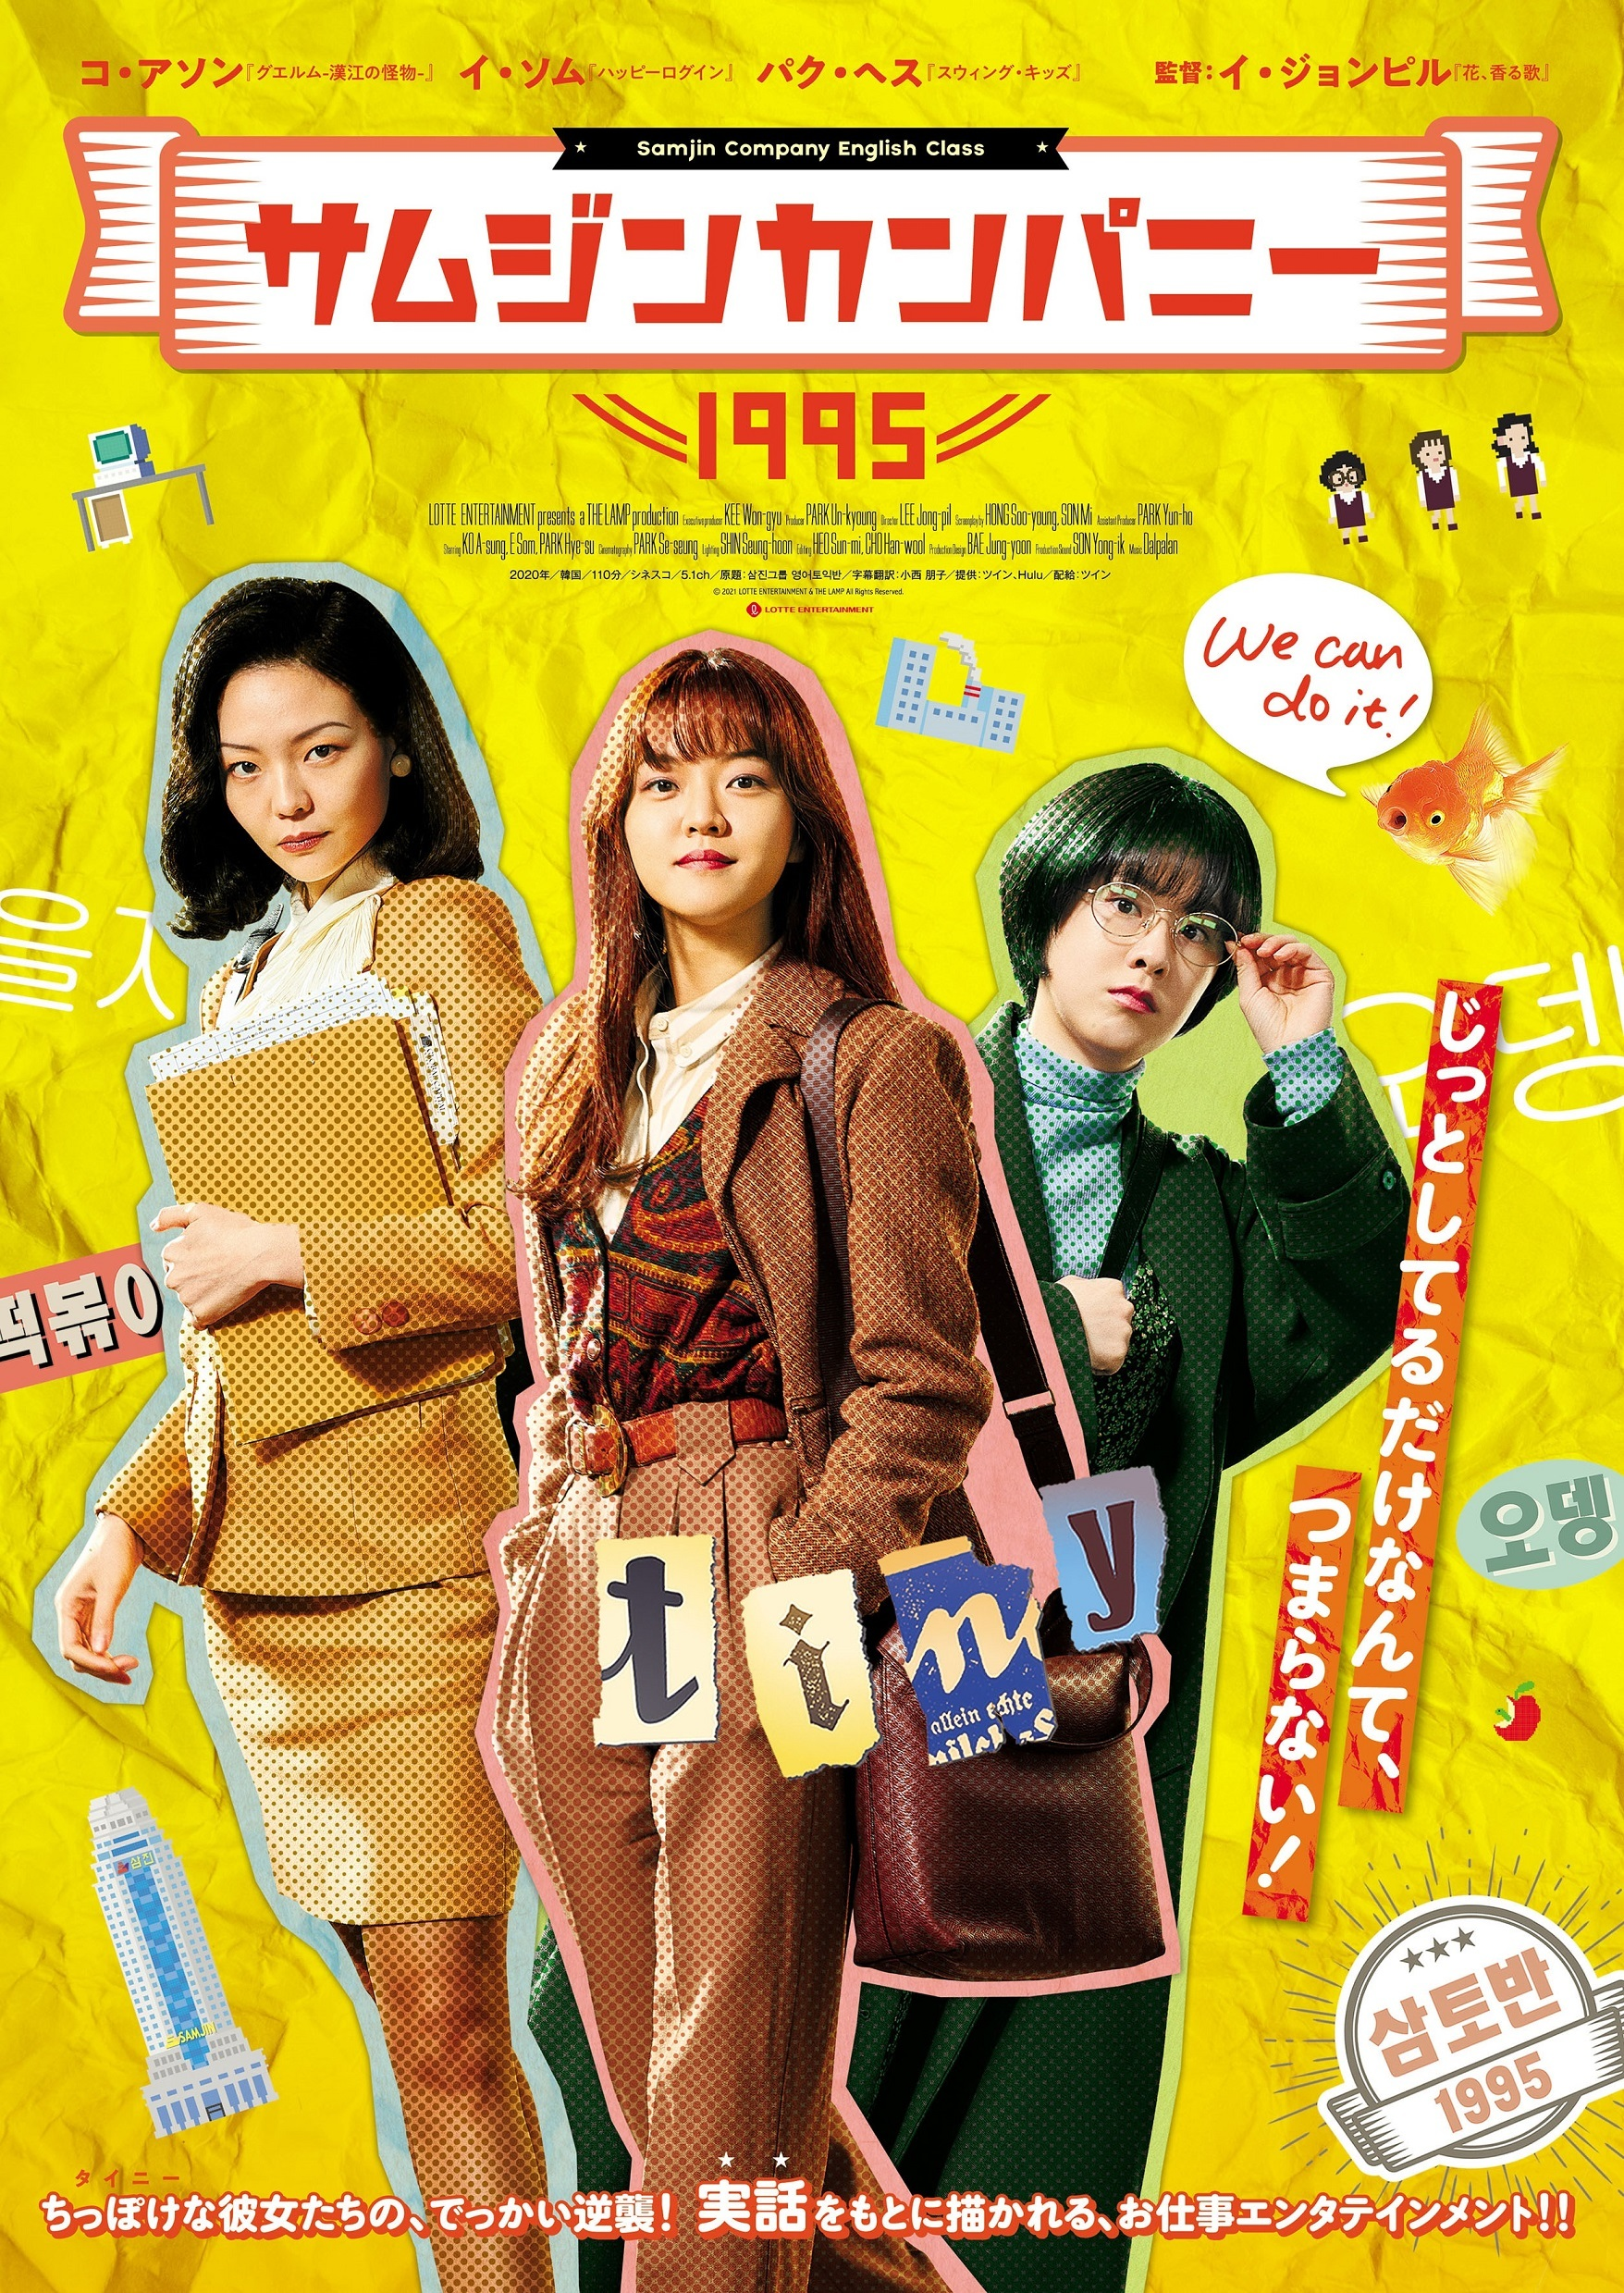 映画『サムジンカンパニー1995』 (C)2020 LOTTE ENTERTAINMENT & THE LAMP All Rights Reserved.